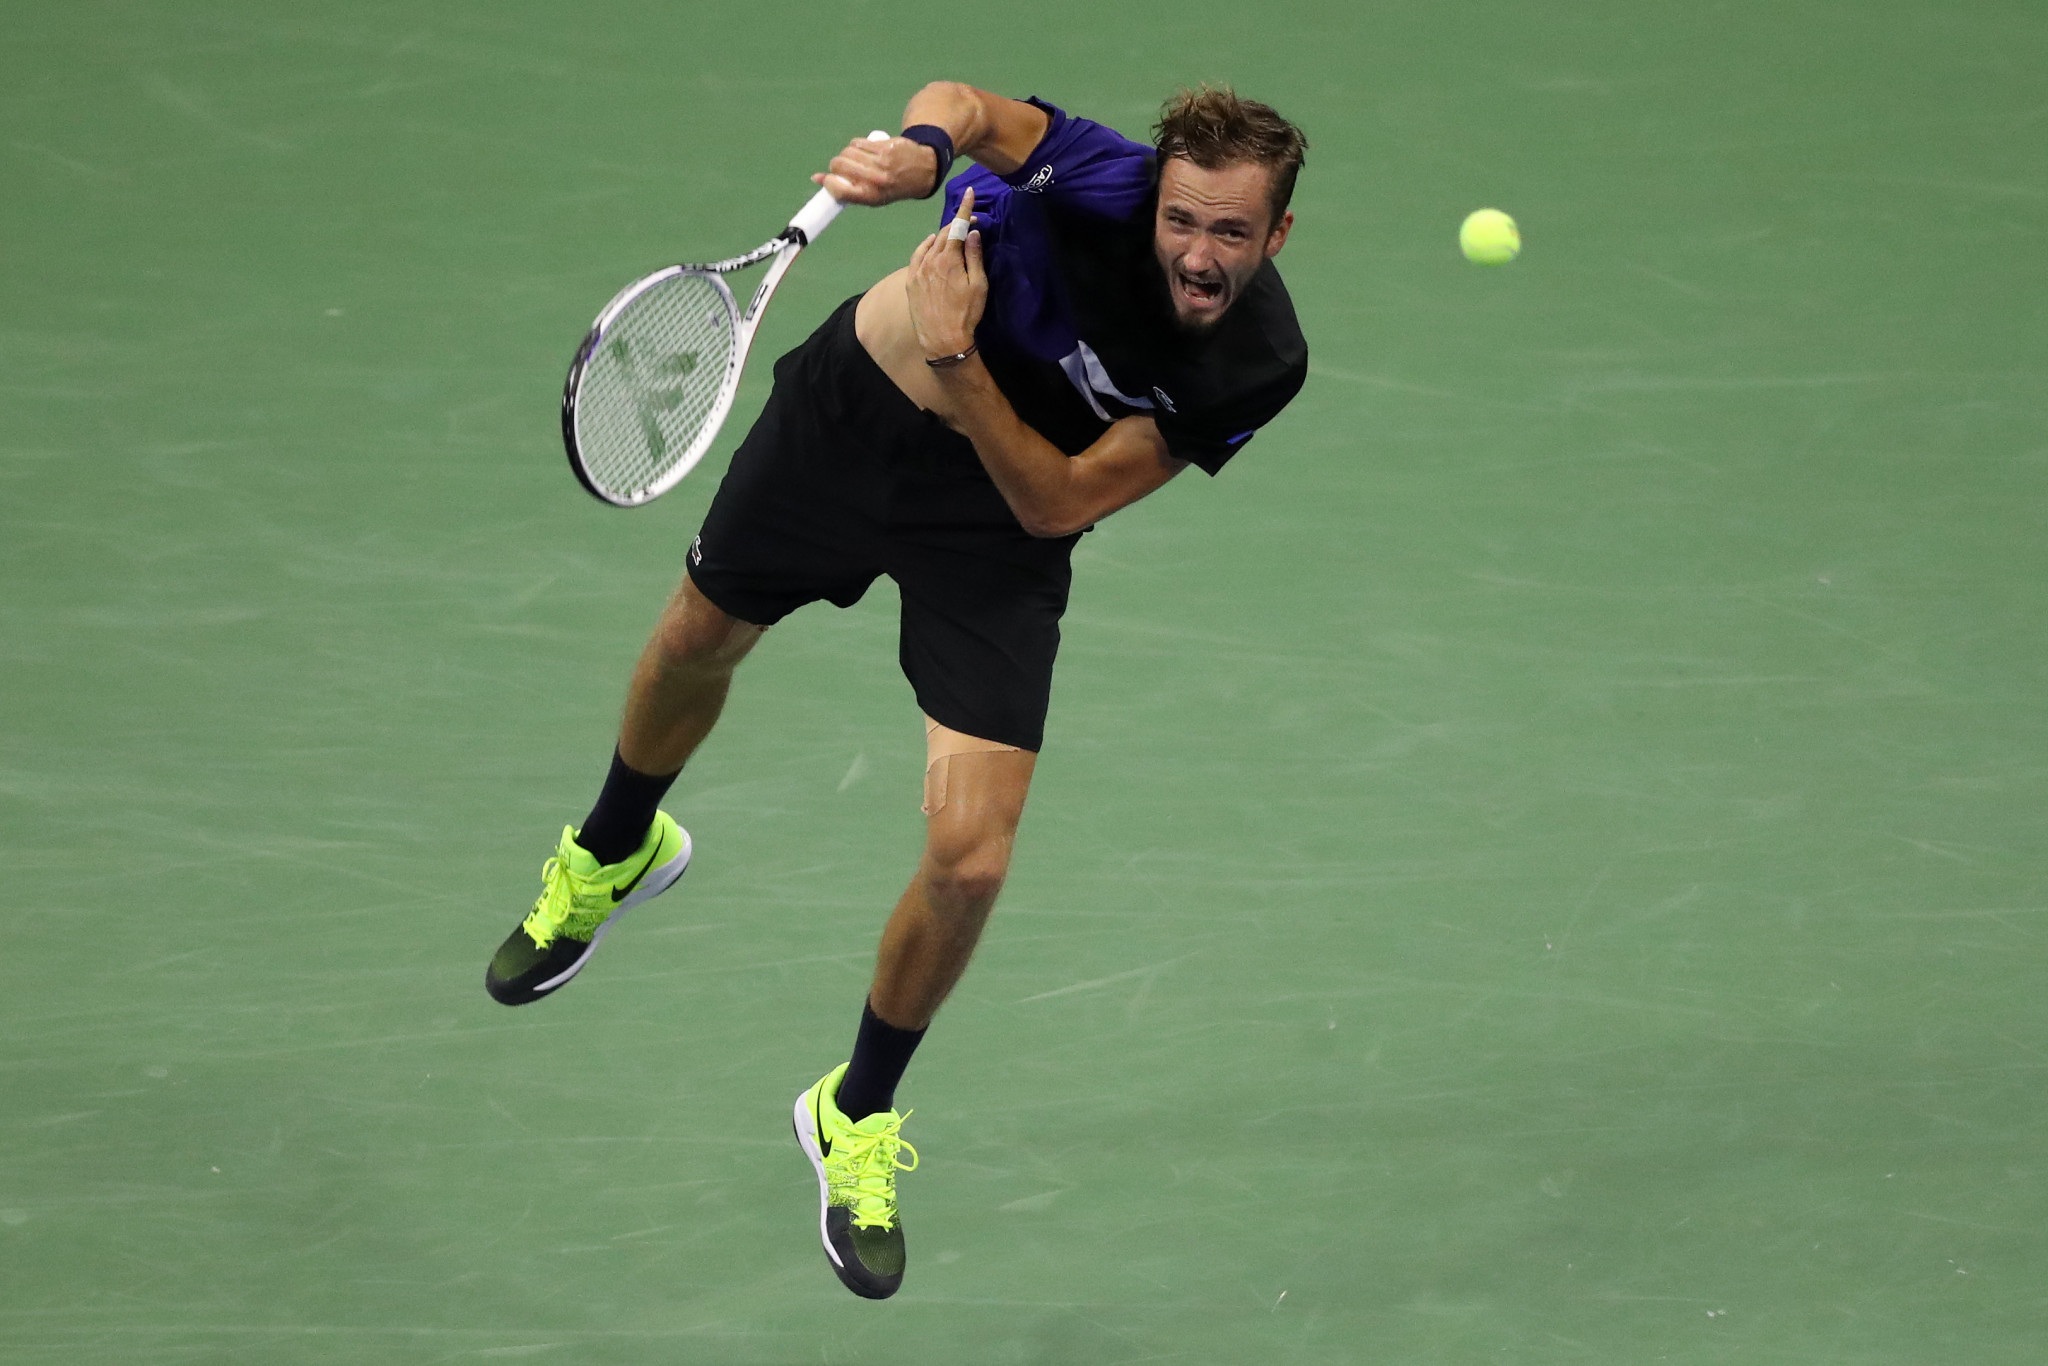 Daniil Medvedev will look to replicate his form from the 2019 US Open ©Getty Images